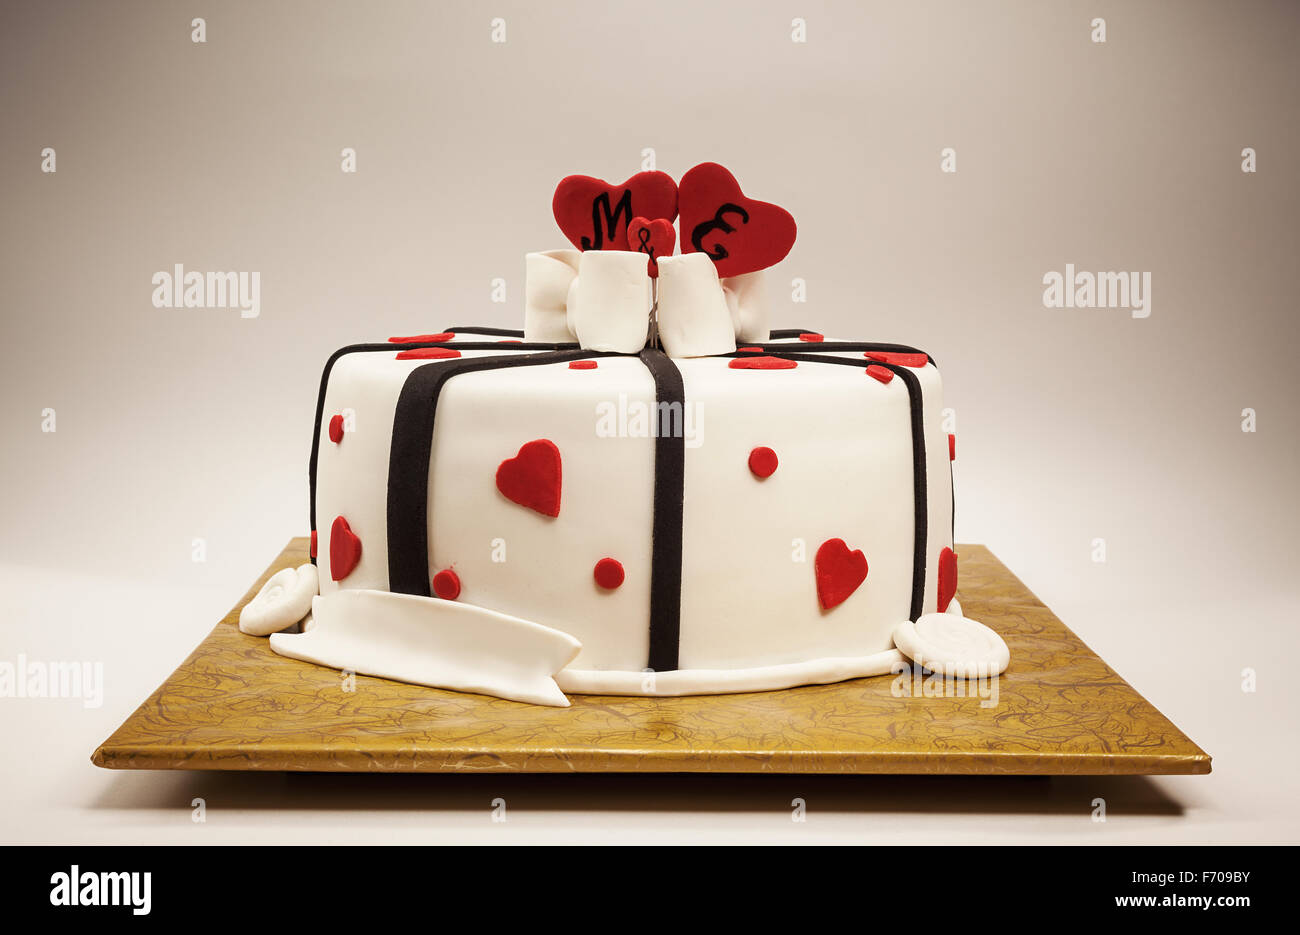 Anniversary cake decoration with red hearts and black ribbons. - Stock Image